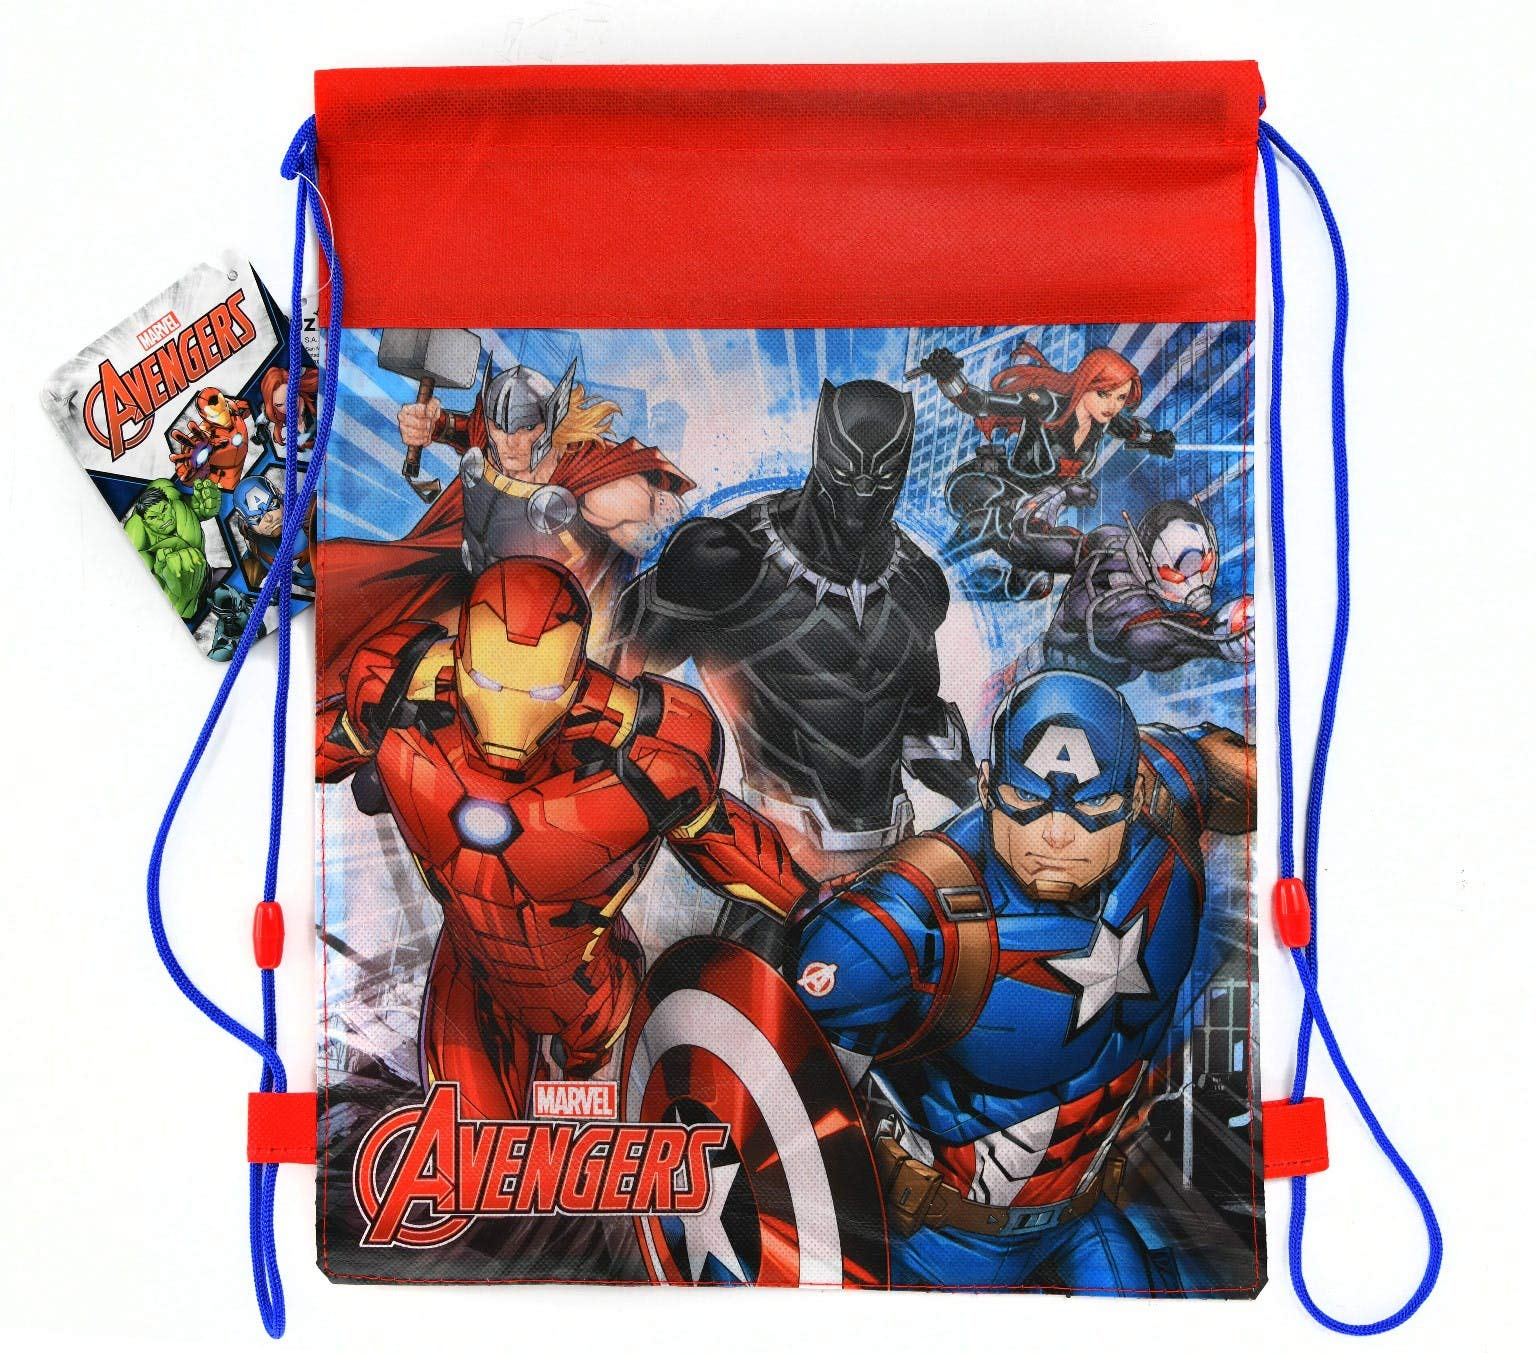 Avengers Non Woven Sling Bag with Hangtag - 24-Pack by Marvel (Image #1)